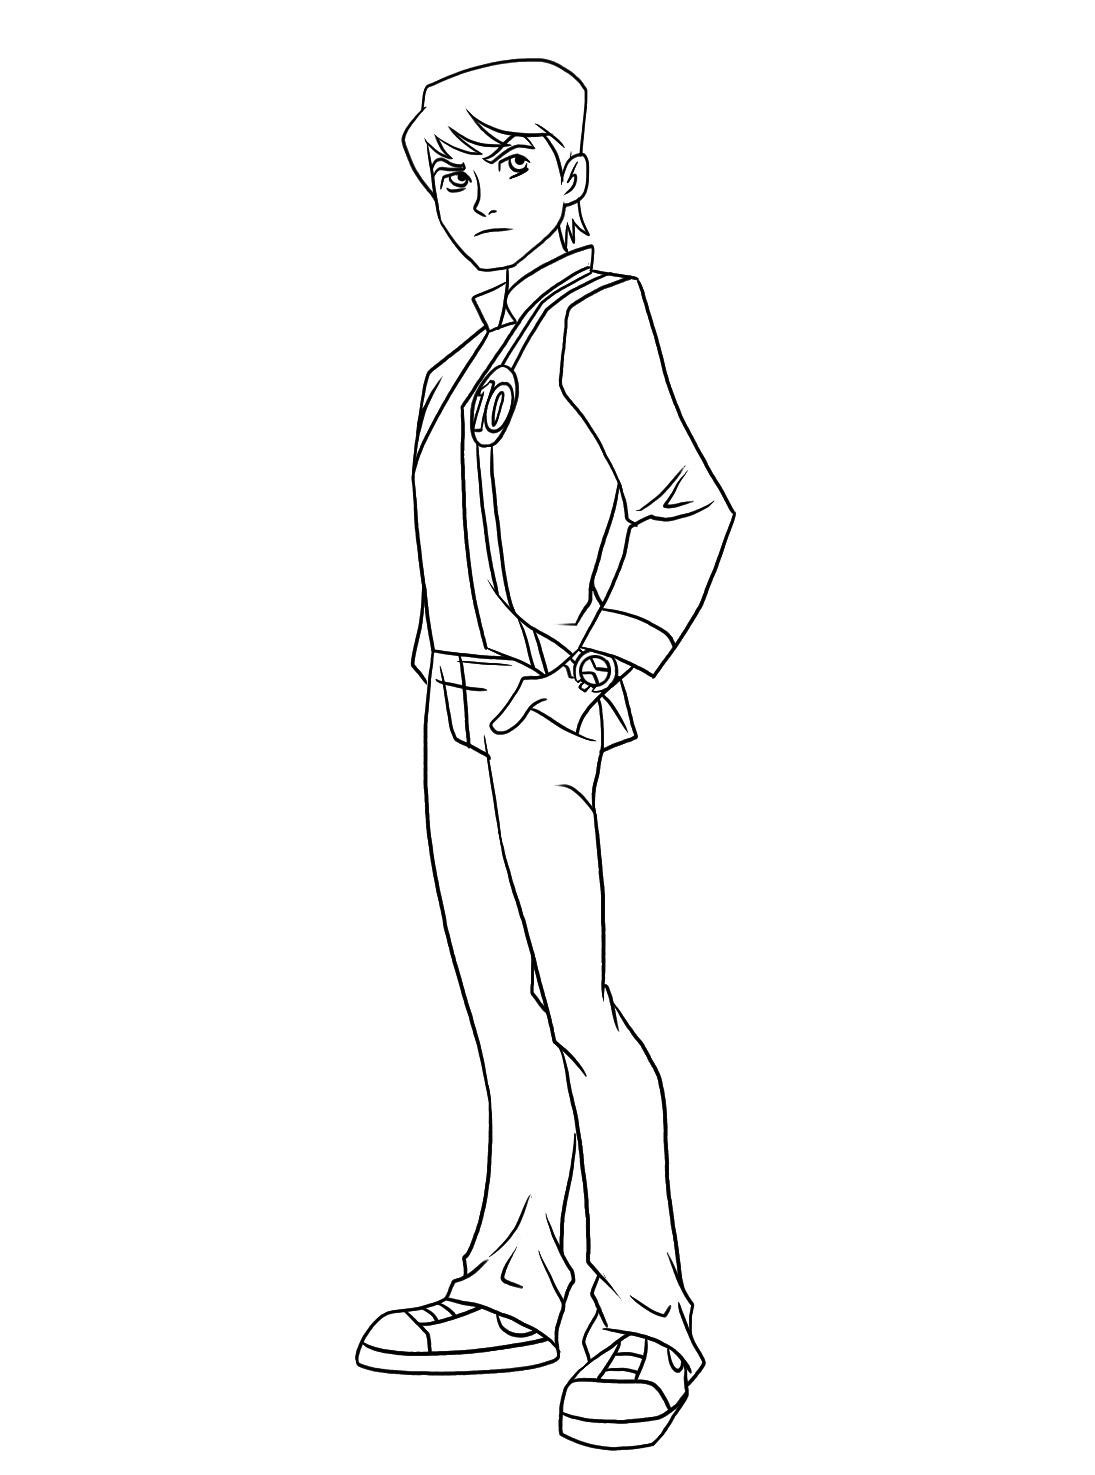 ben 10 coloring pages - photo#27